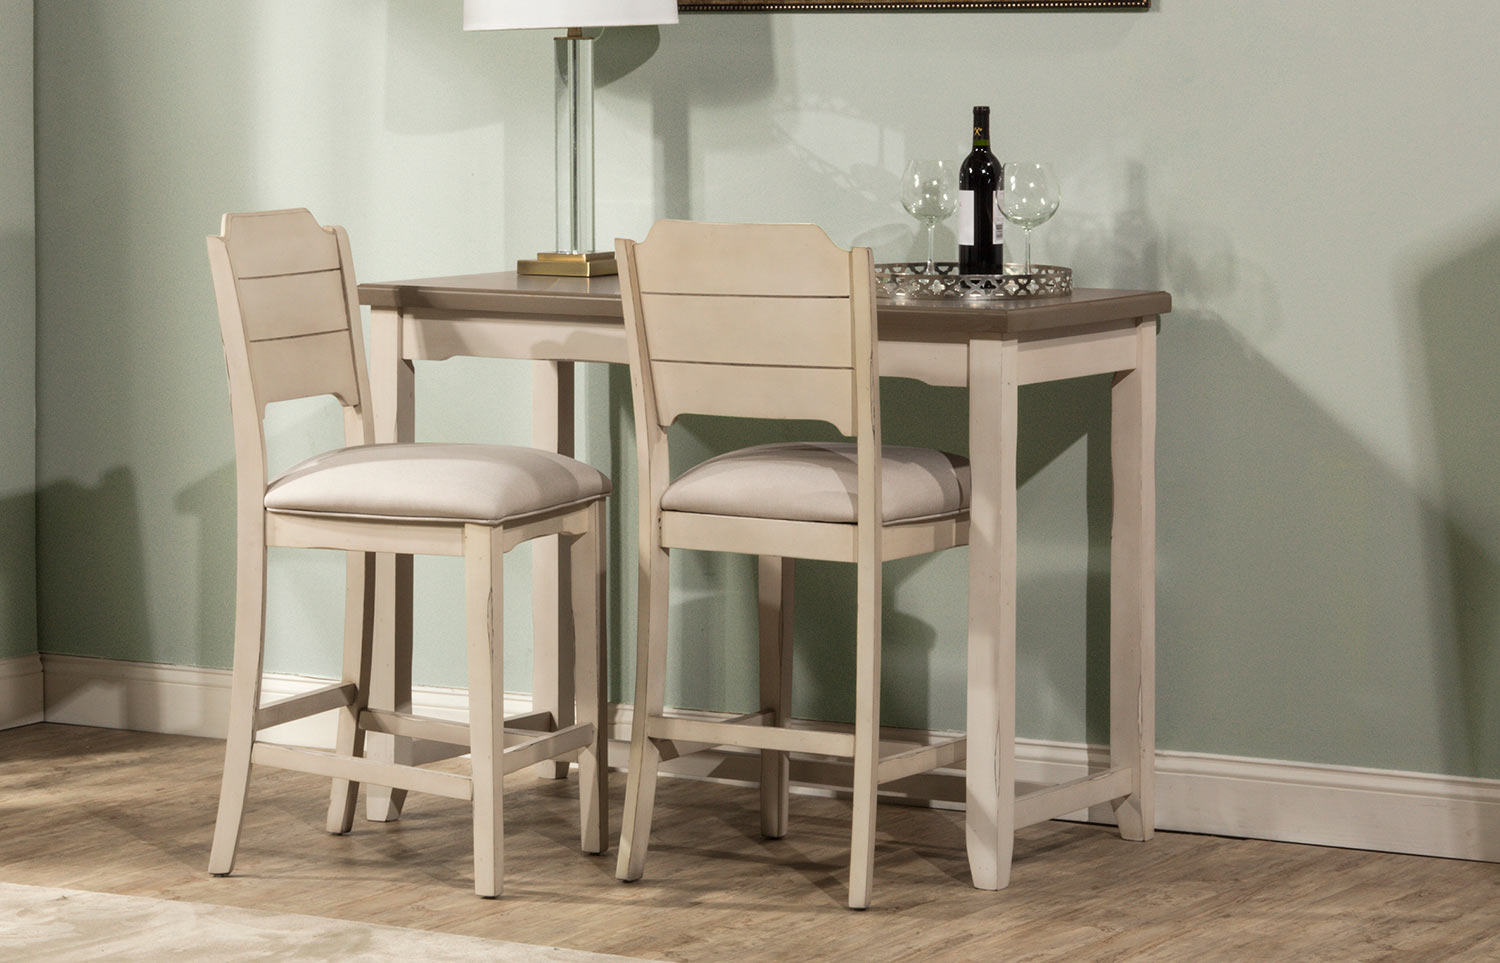 Hillsdale Clarion 3-Piece Counter Height Dining Set - Gray/White - Fog Fabric